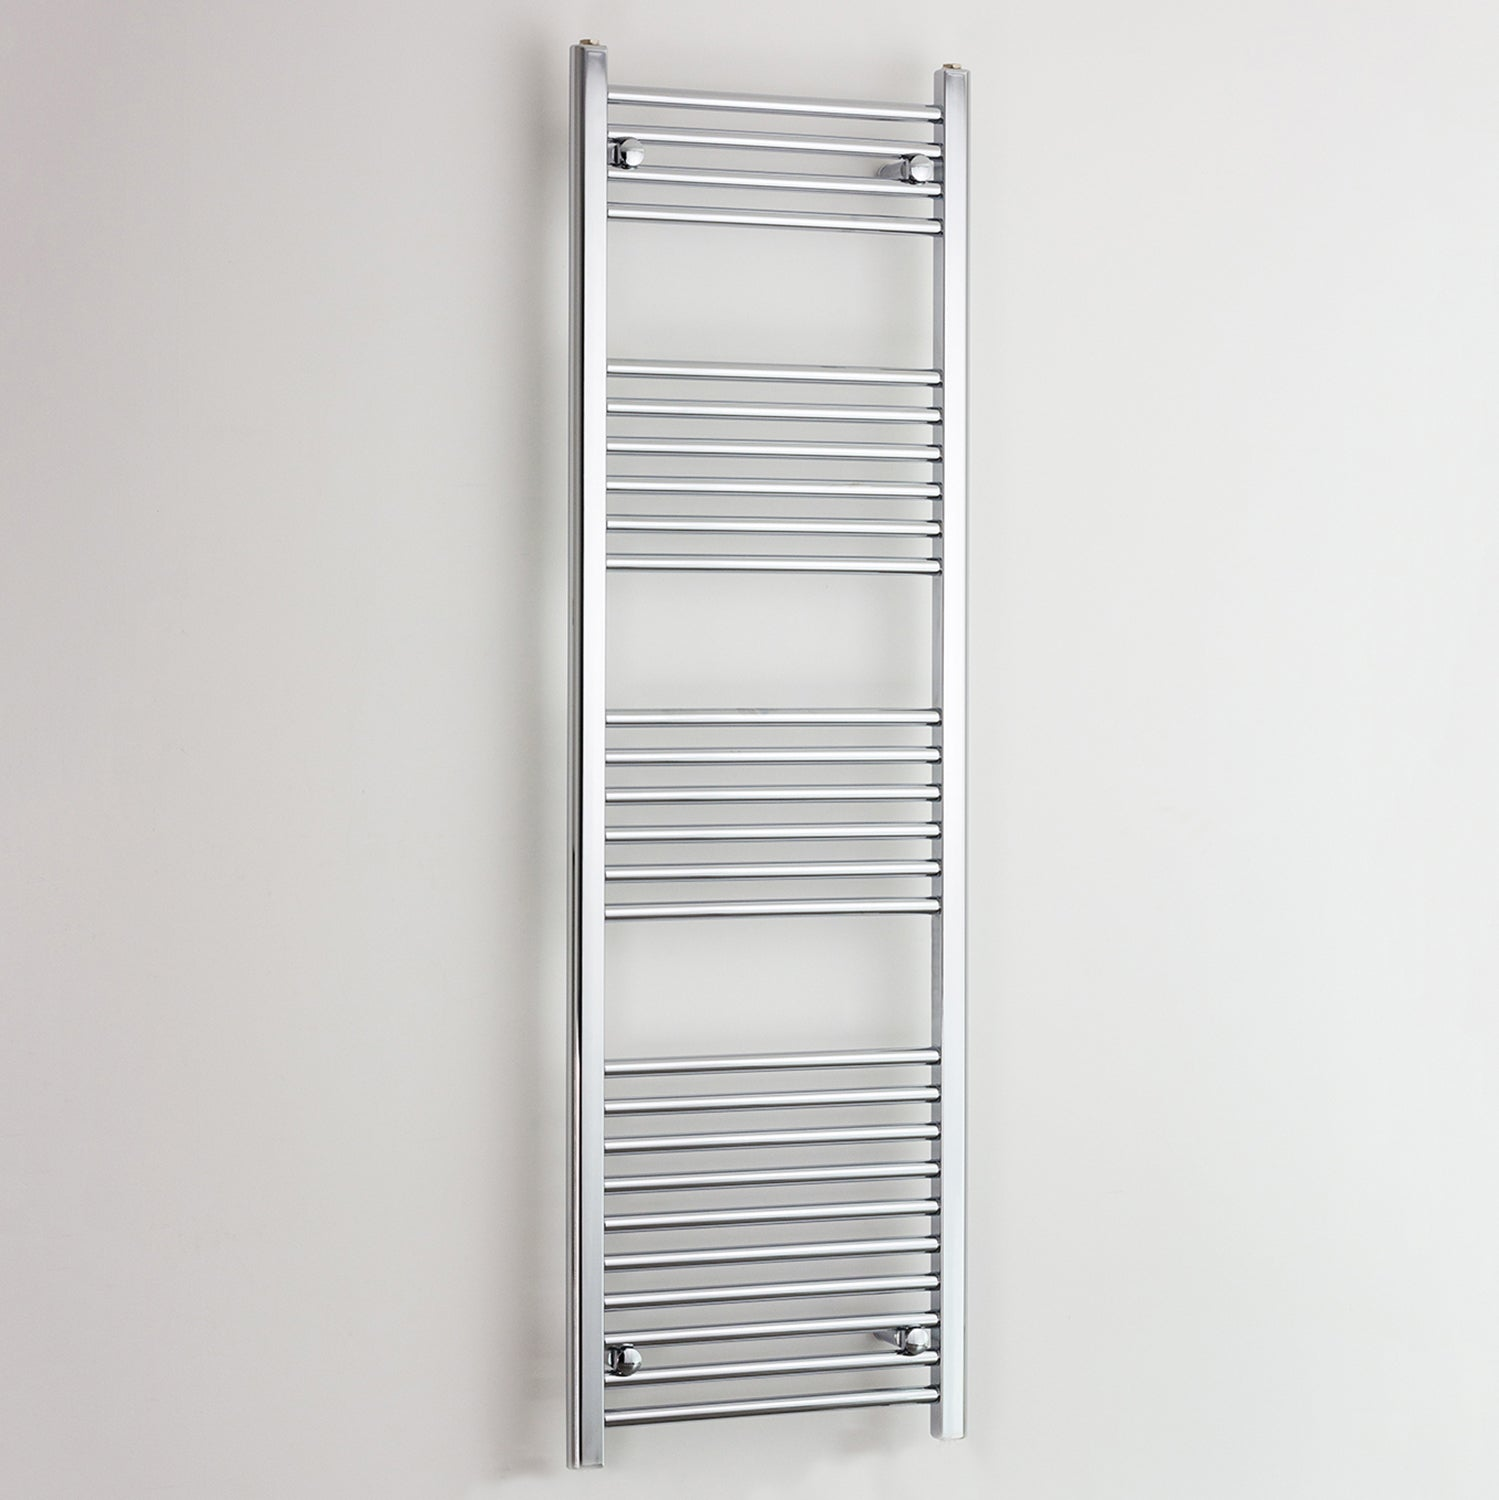 400mm Wide 1600mm High Curved Chrome Heated Towel Rail Radiator HTR,Towel Rail Only